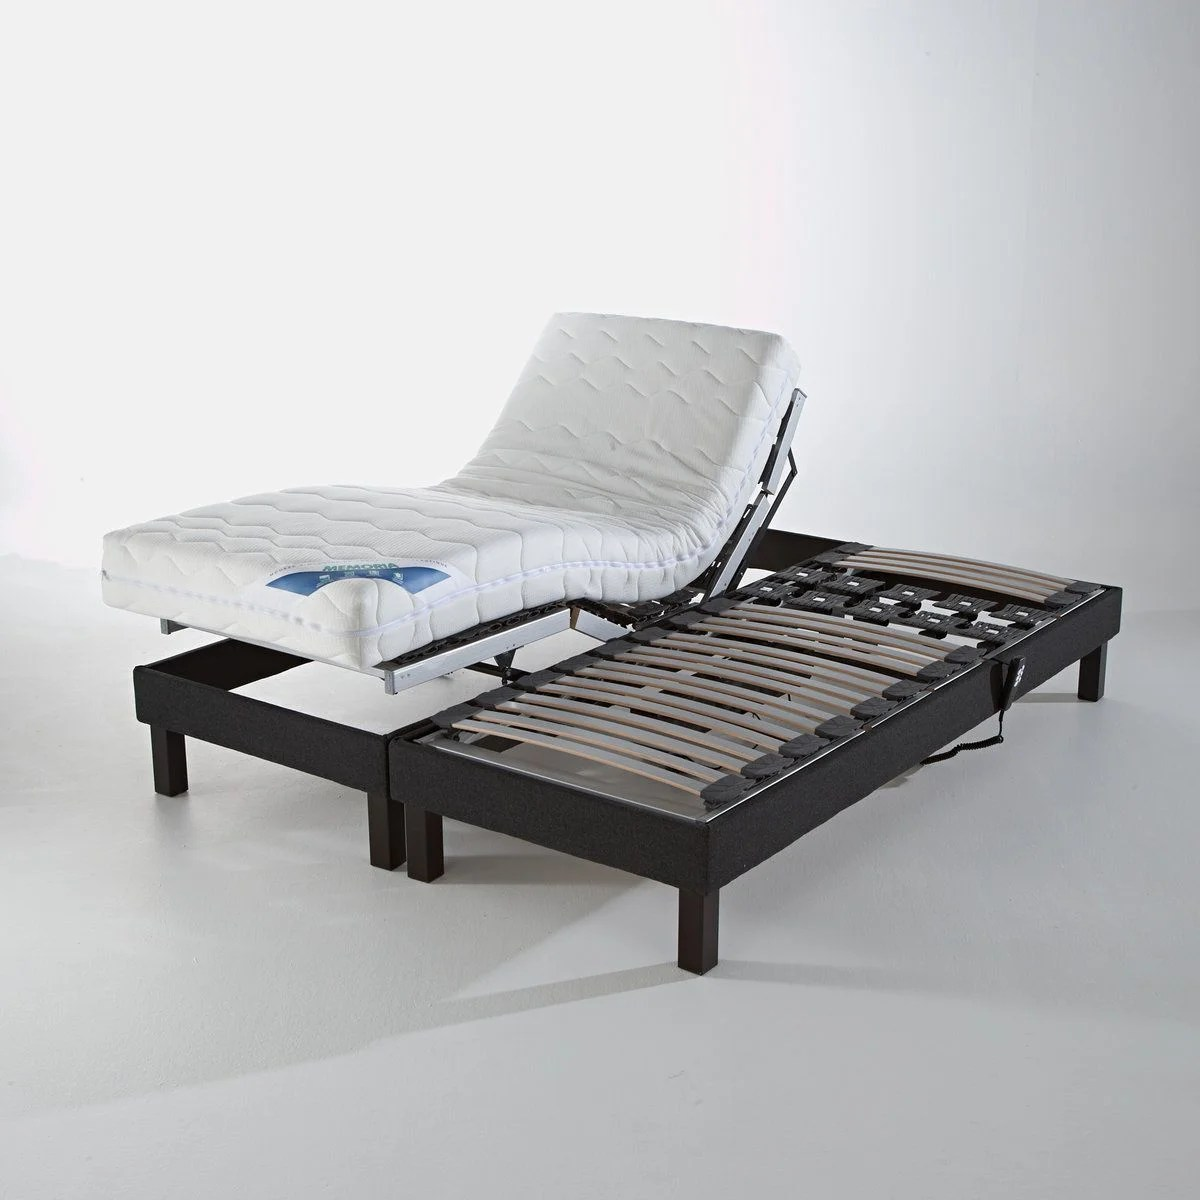 Lit Relaxation 2x90x200 Someo Sommier Relaxation Electrique Luxe Gris 2x80x200